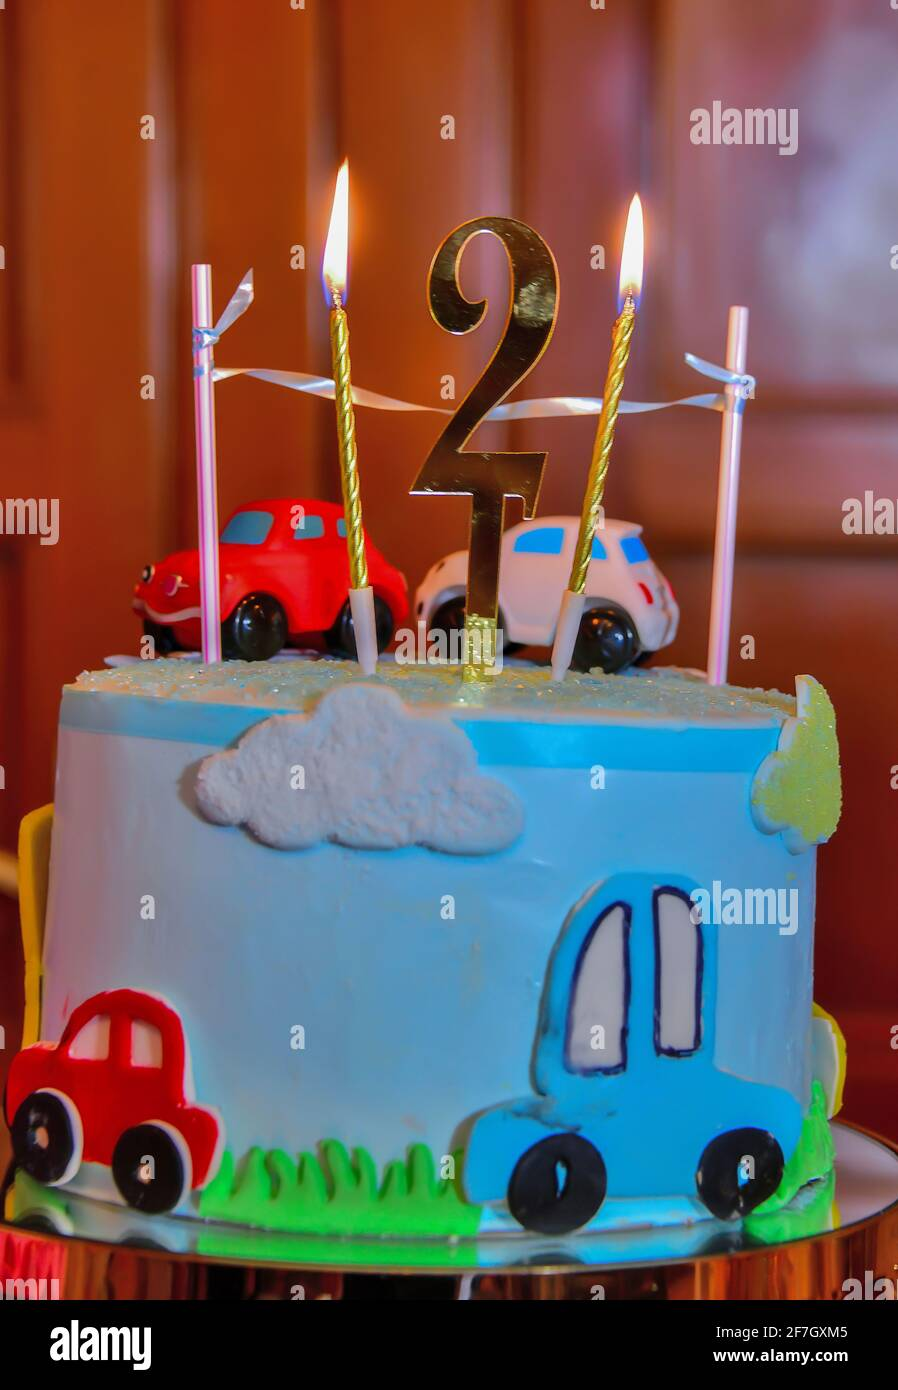 Car and truck cake tutorial by my cake school! Children S Colorful Fondant Birthday Cake Decorated With Little Cars And Number Two On The Top Stock Photo Alamy